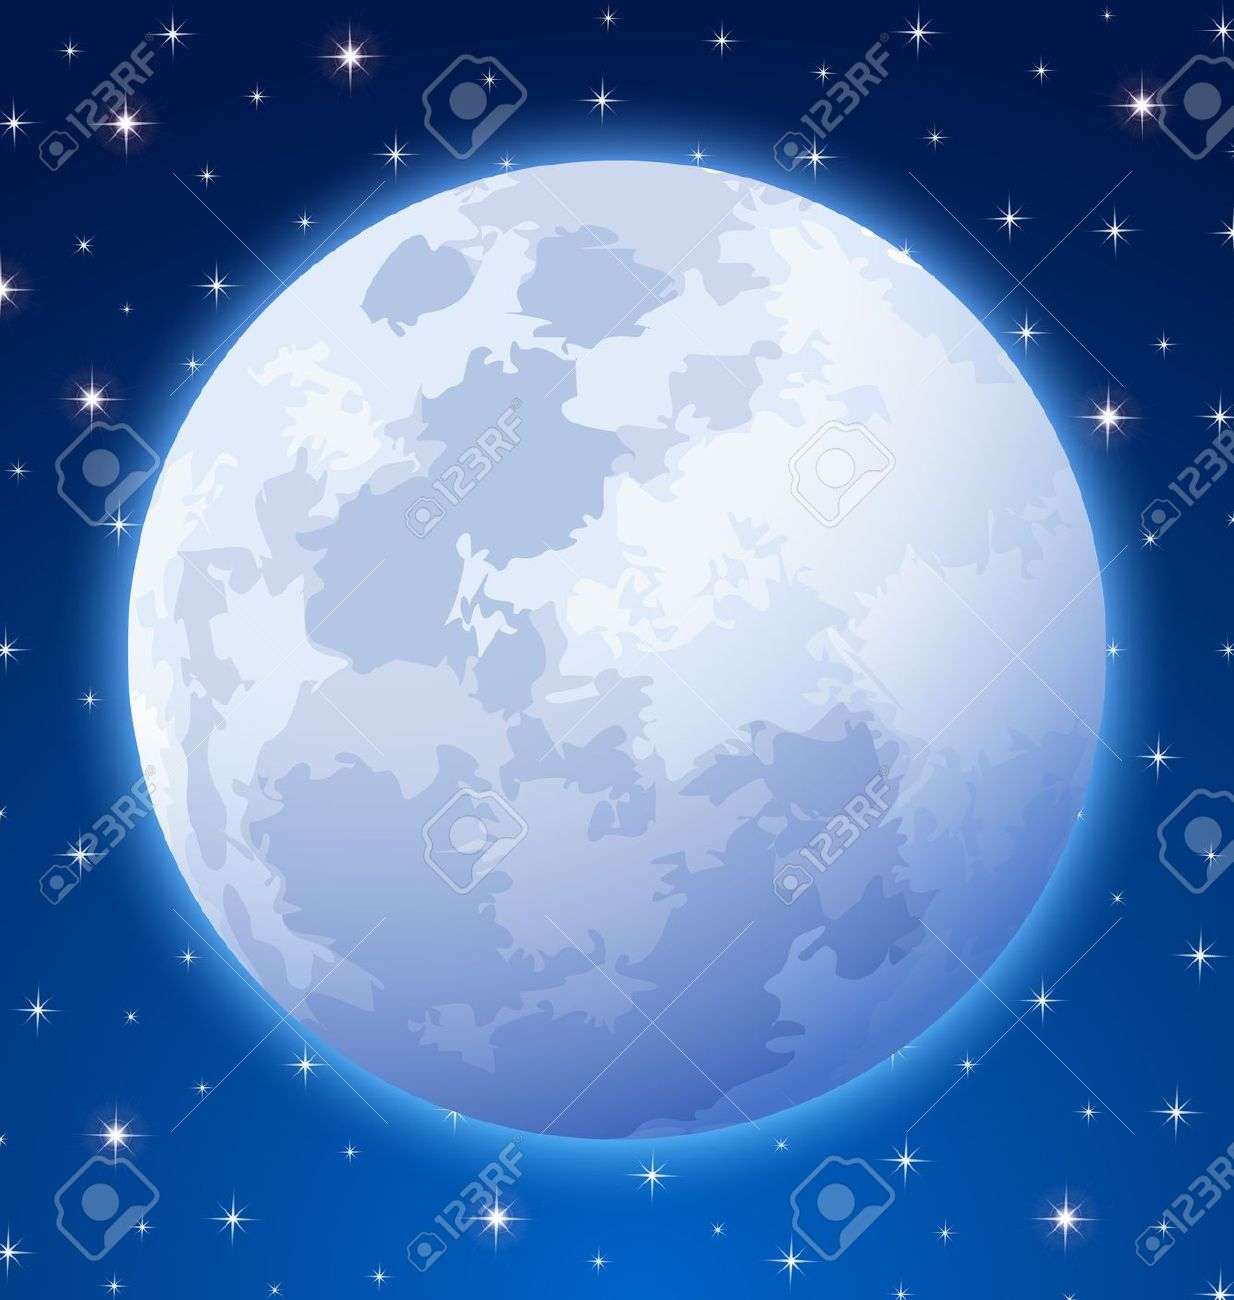 Full moon night clipart - Clipground